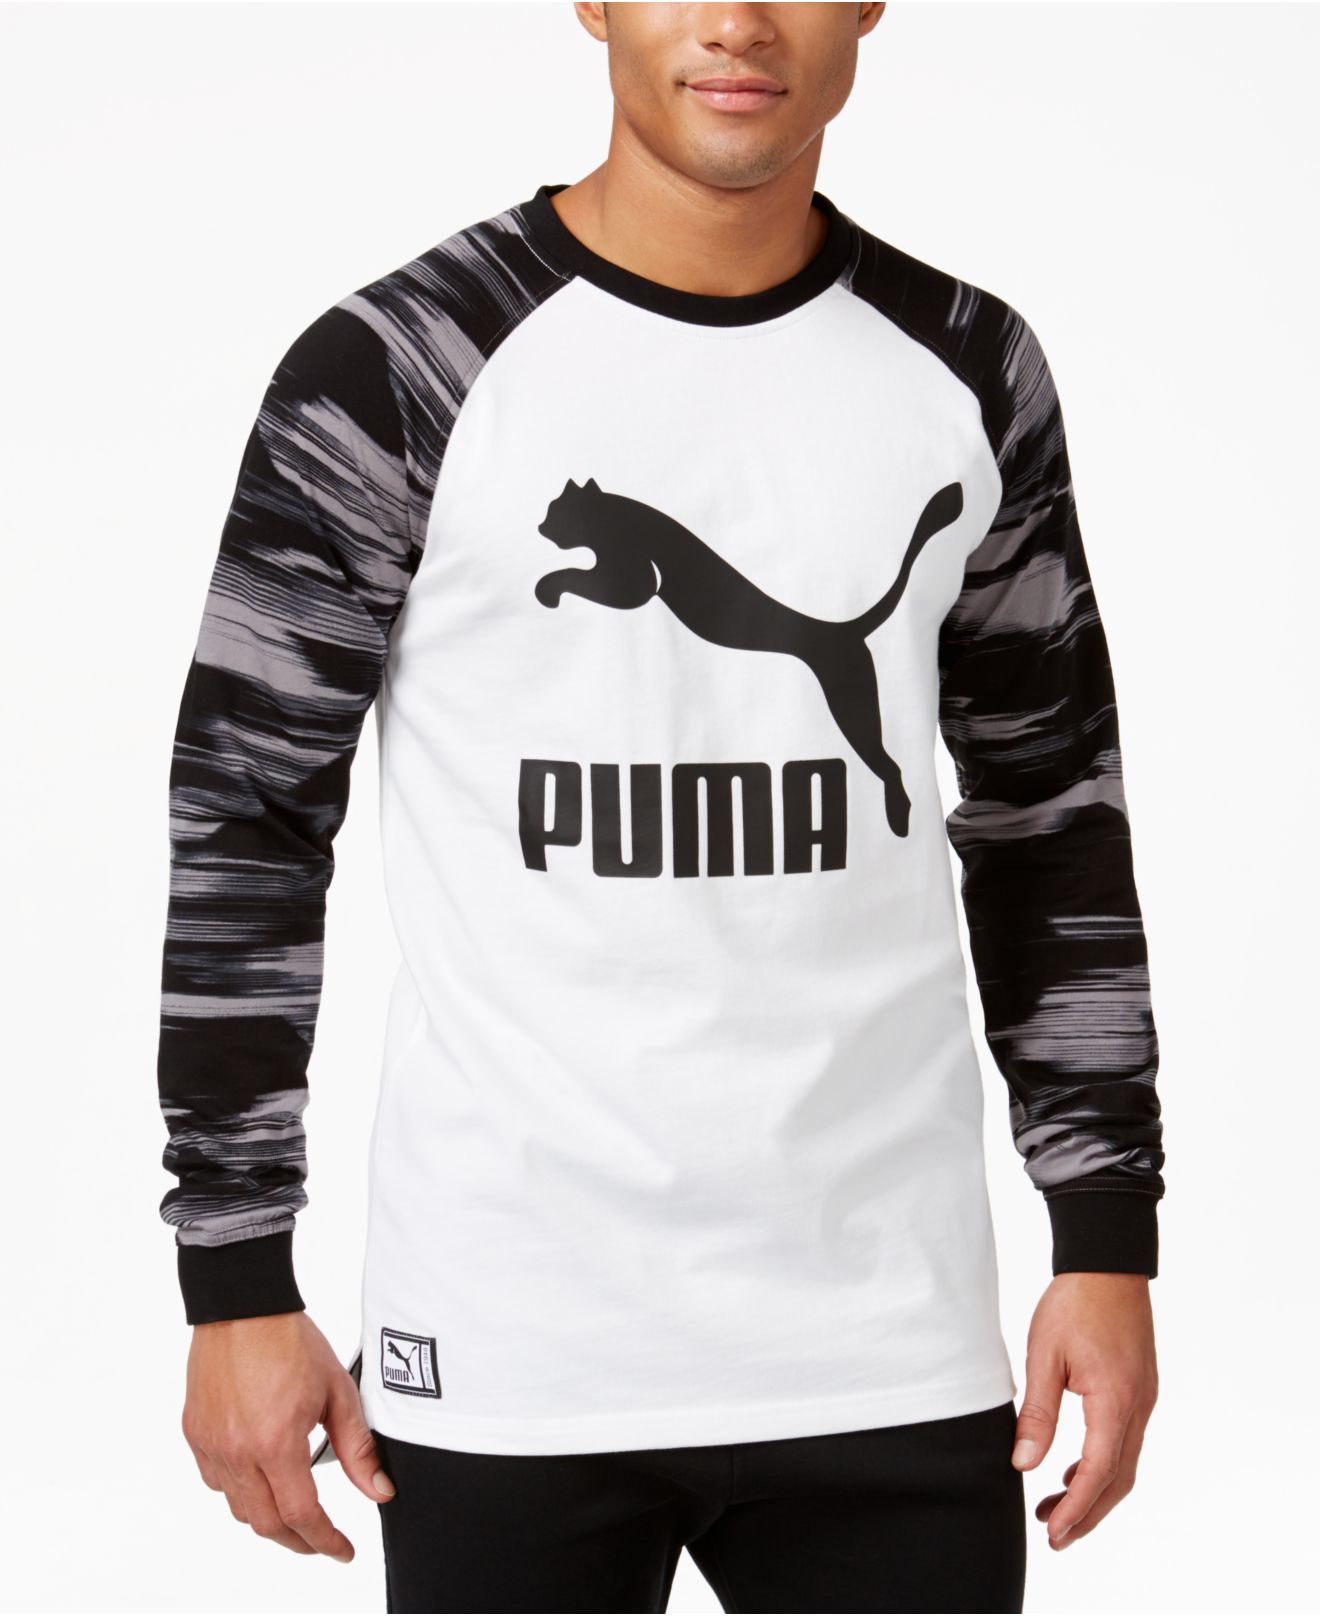 Puma t shirts t shirt design database Mens long sleeve white t shirt